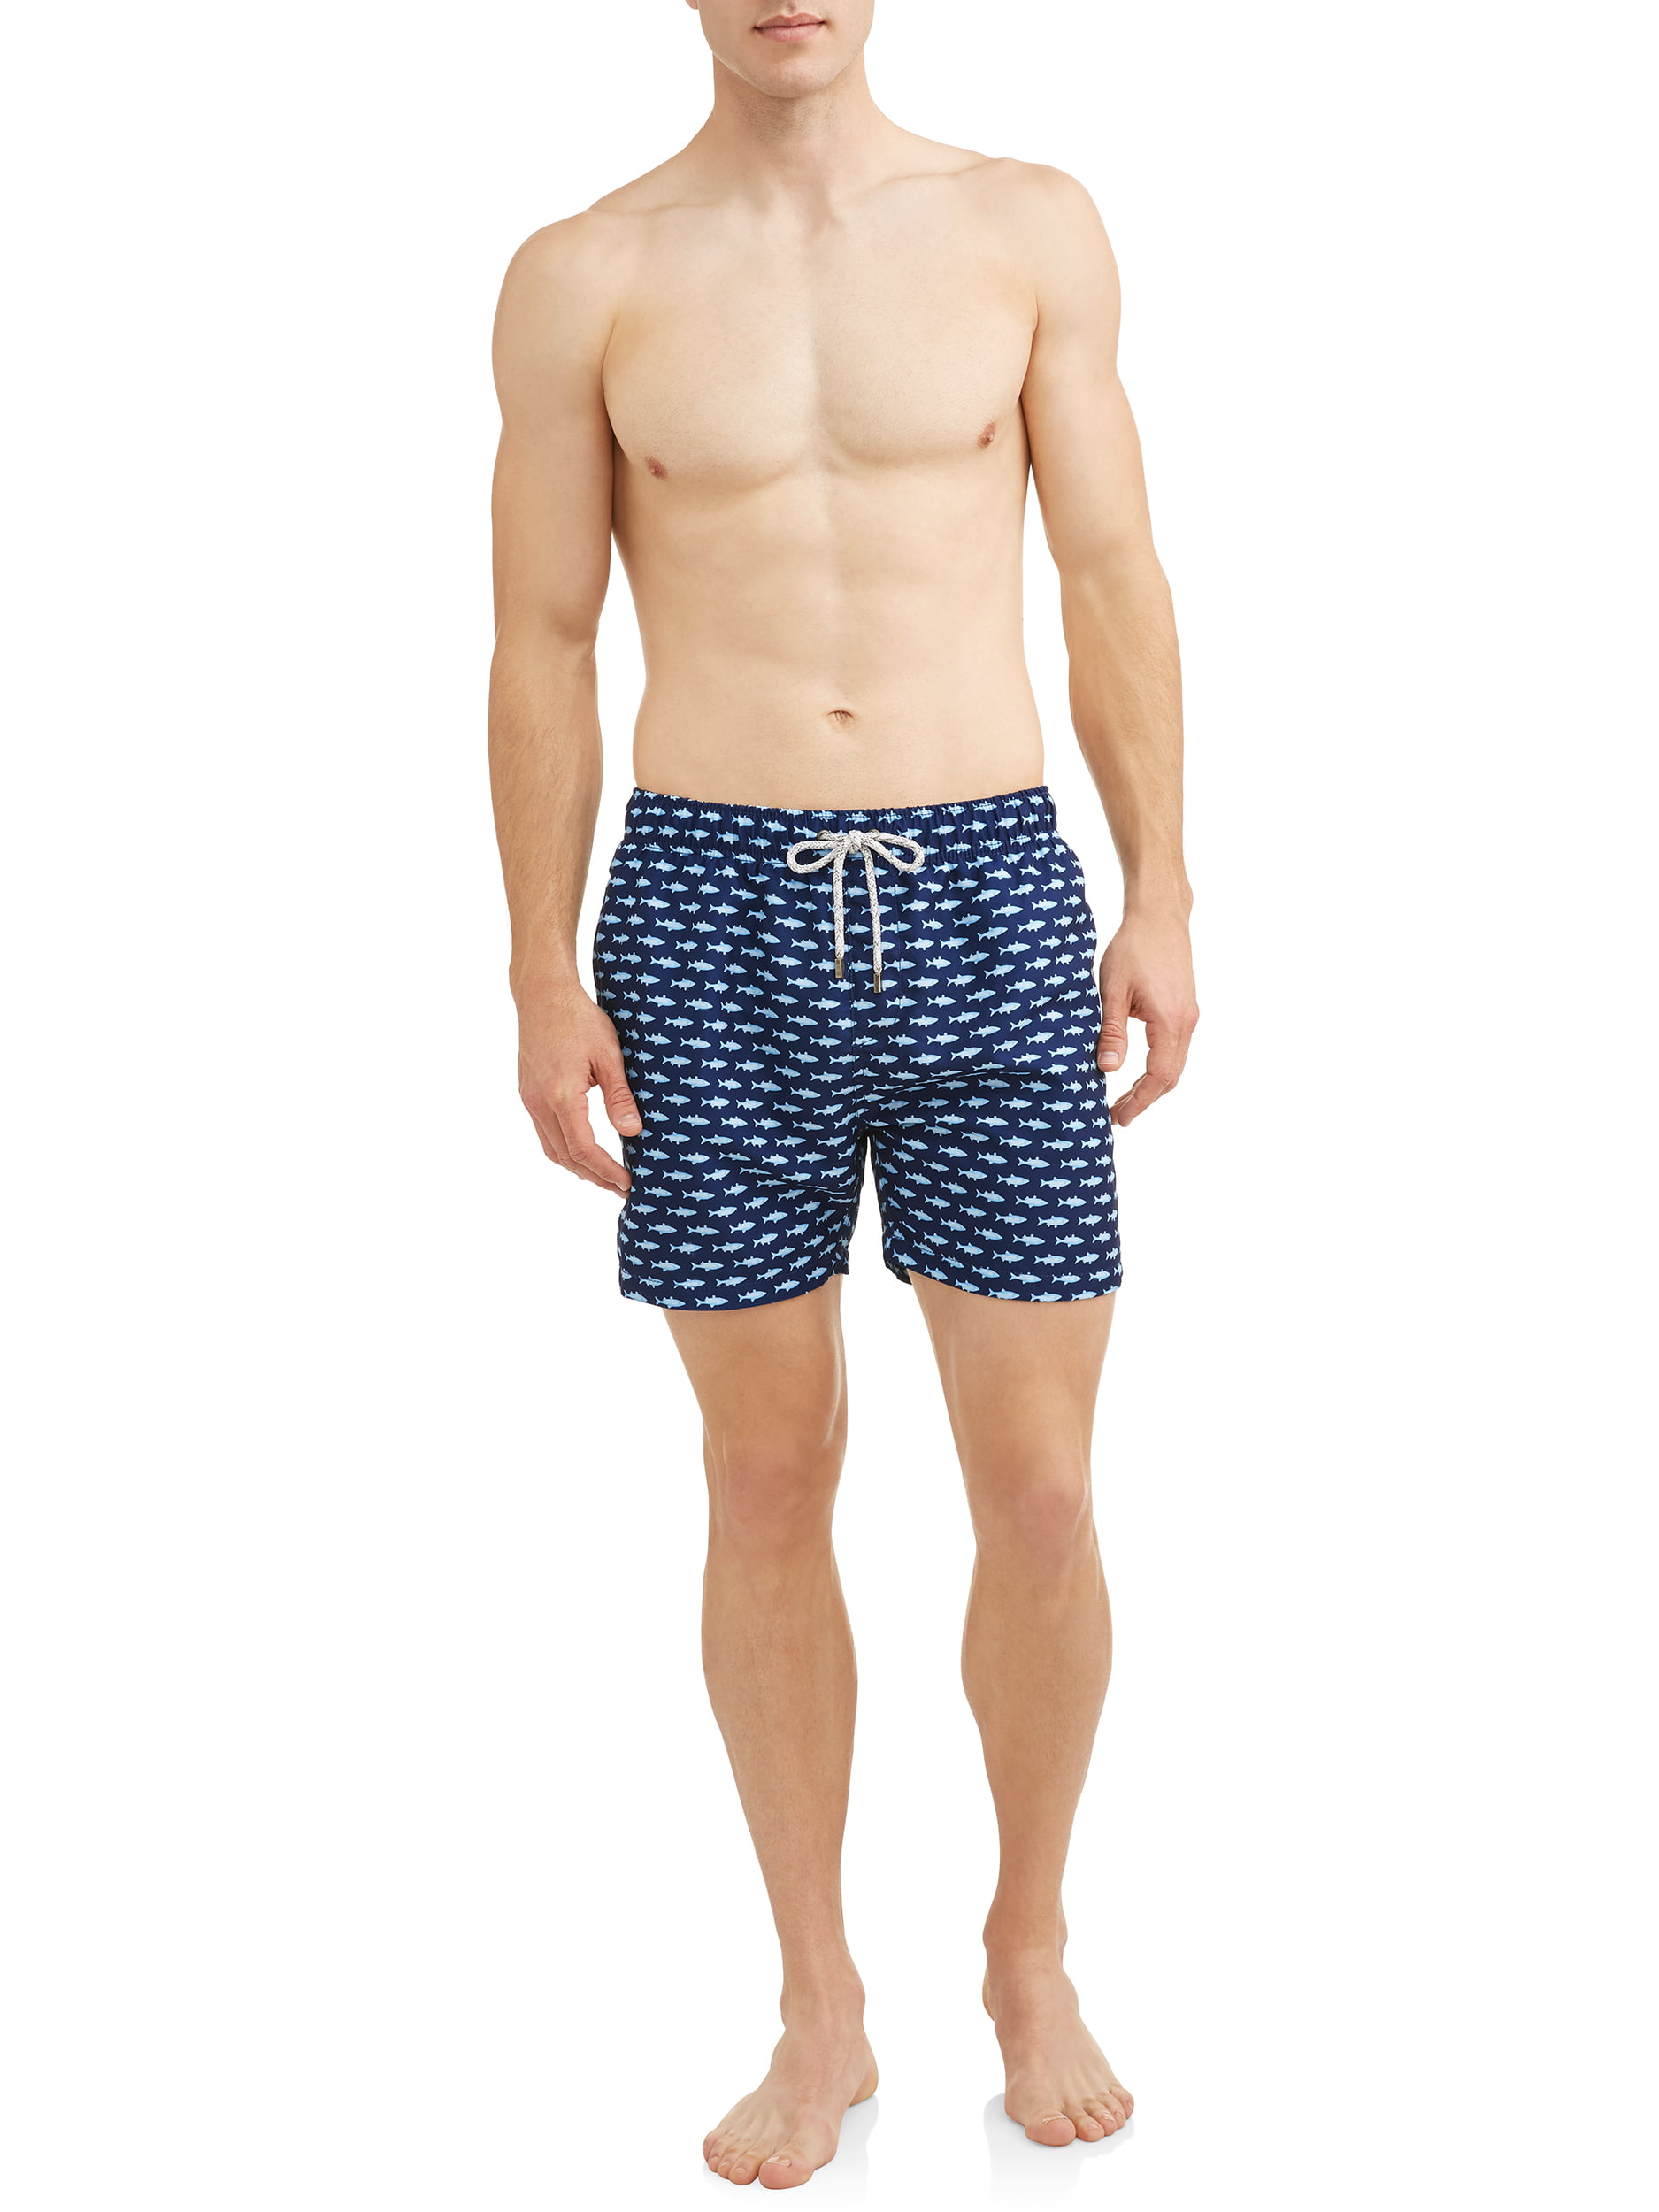 7af7c98c33 Endless Summer - Endless Summer Men's Printed Volley 5.5 Inch Swim Shorts.  Up to size 2XL - Walmart.com